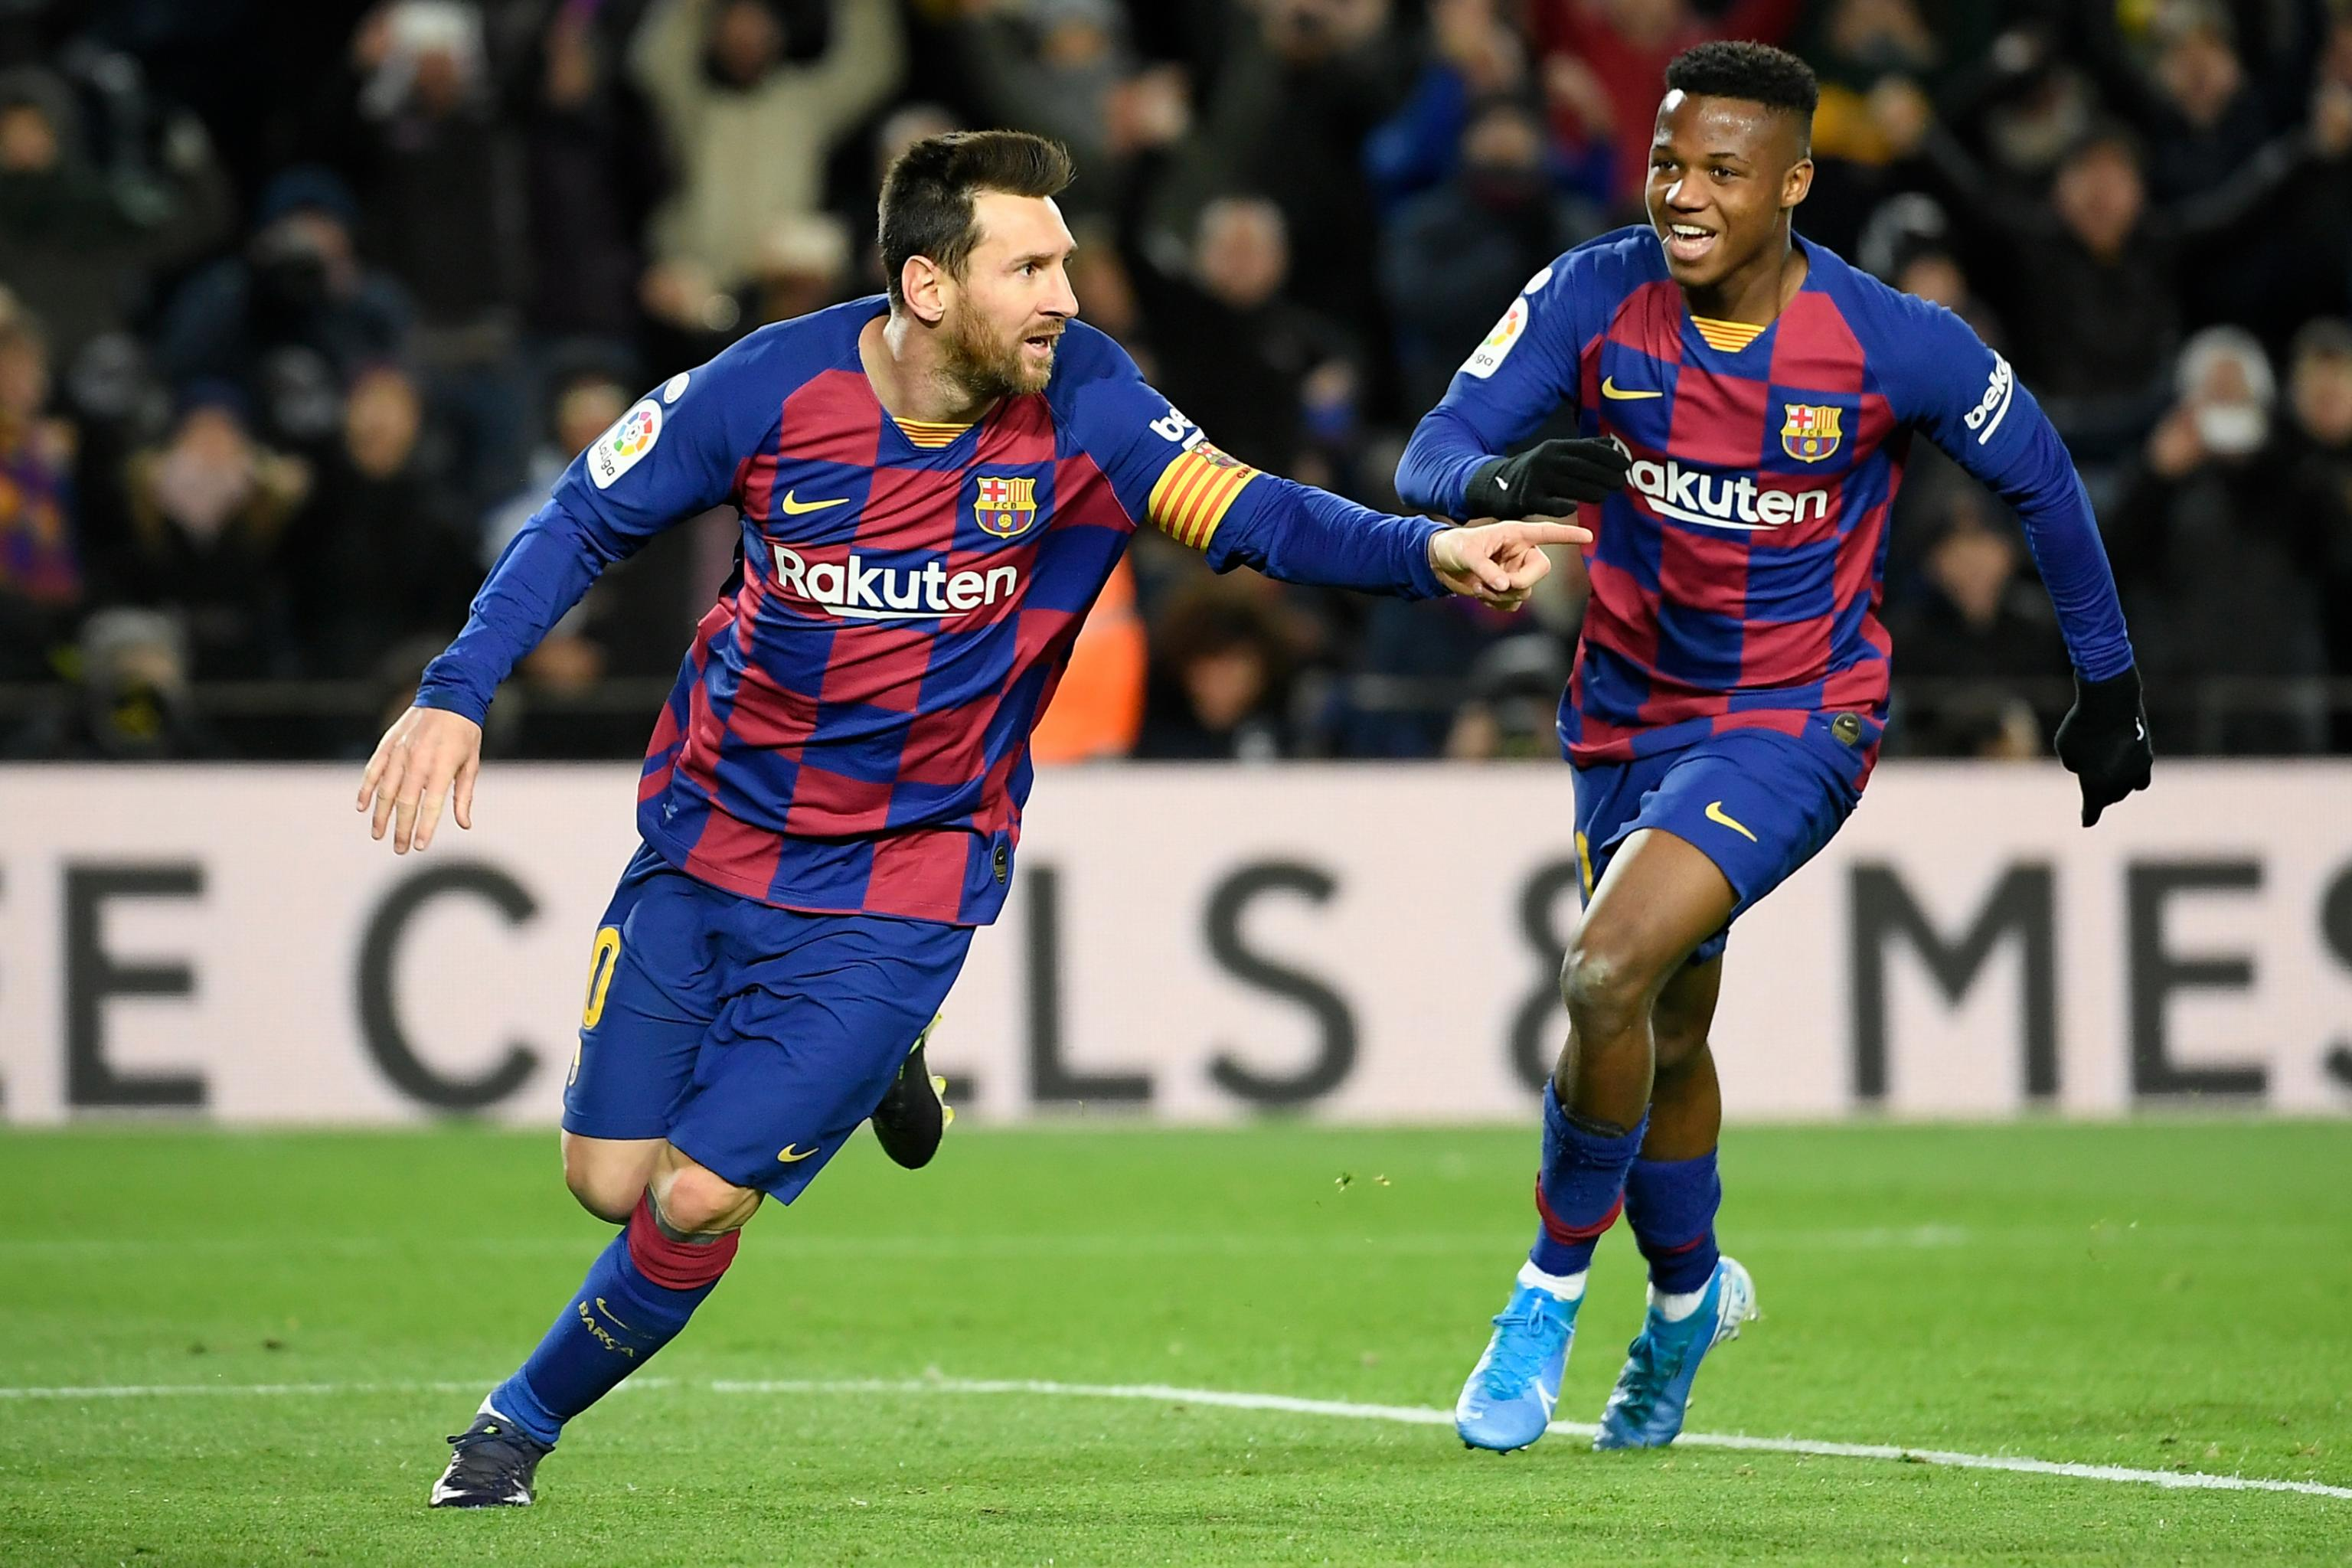 Lionel Messi S Late Goal Gives Barcelona Narrow Win Vs Granada Bleacher Report Latest News Videos And Highlights